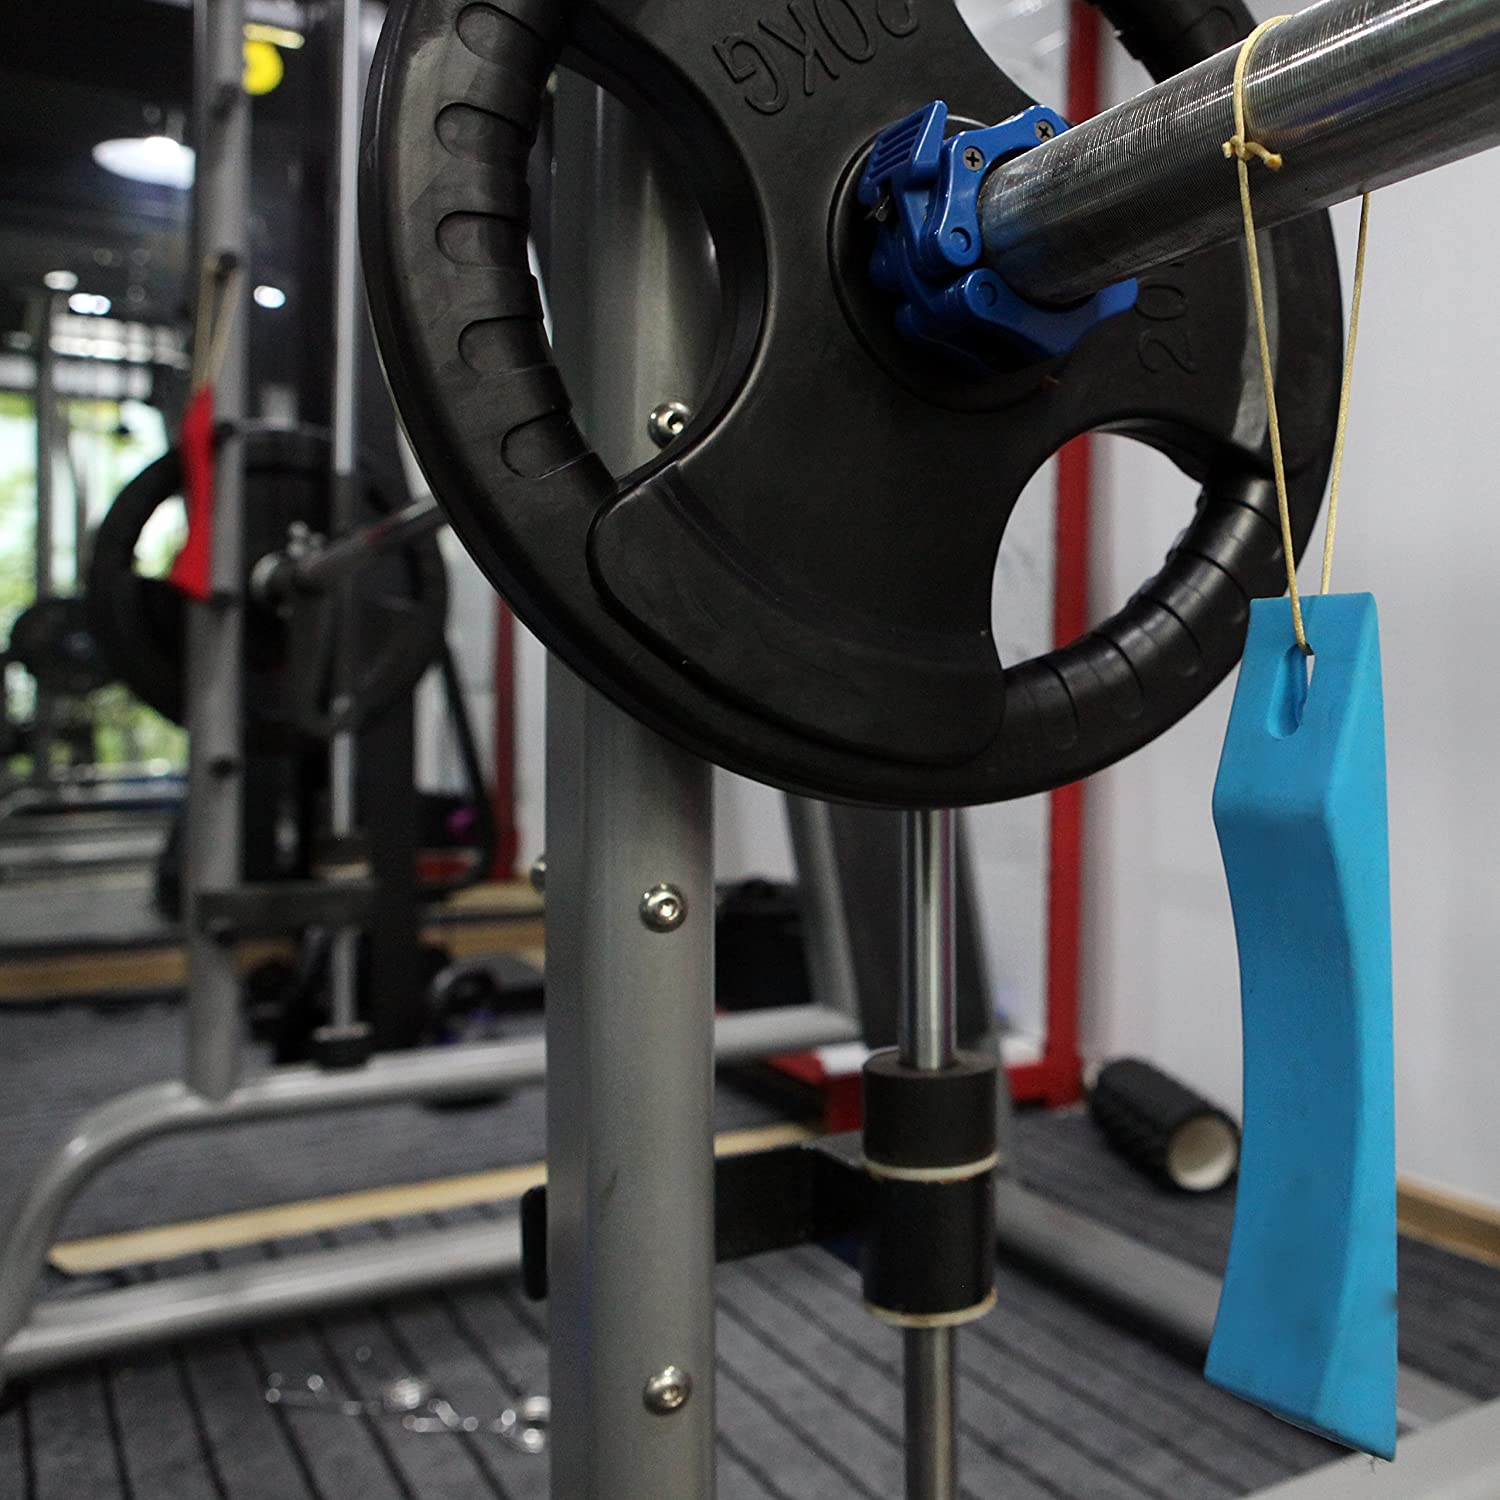 Multiple Colors Safely Load and Unload Barbell and Plates Free Carry Bag Included AbraFit Deadlift Barbell Jack Alternative Wedge